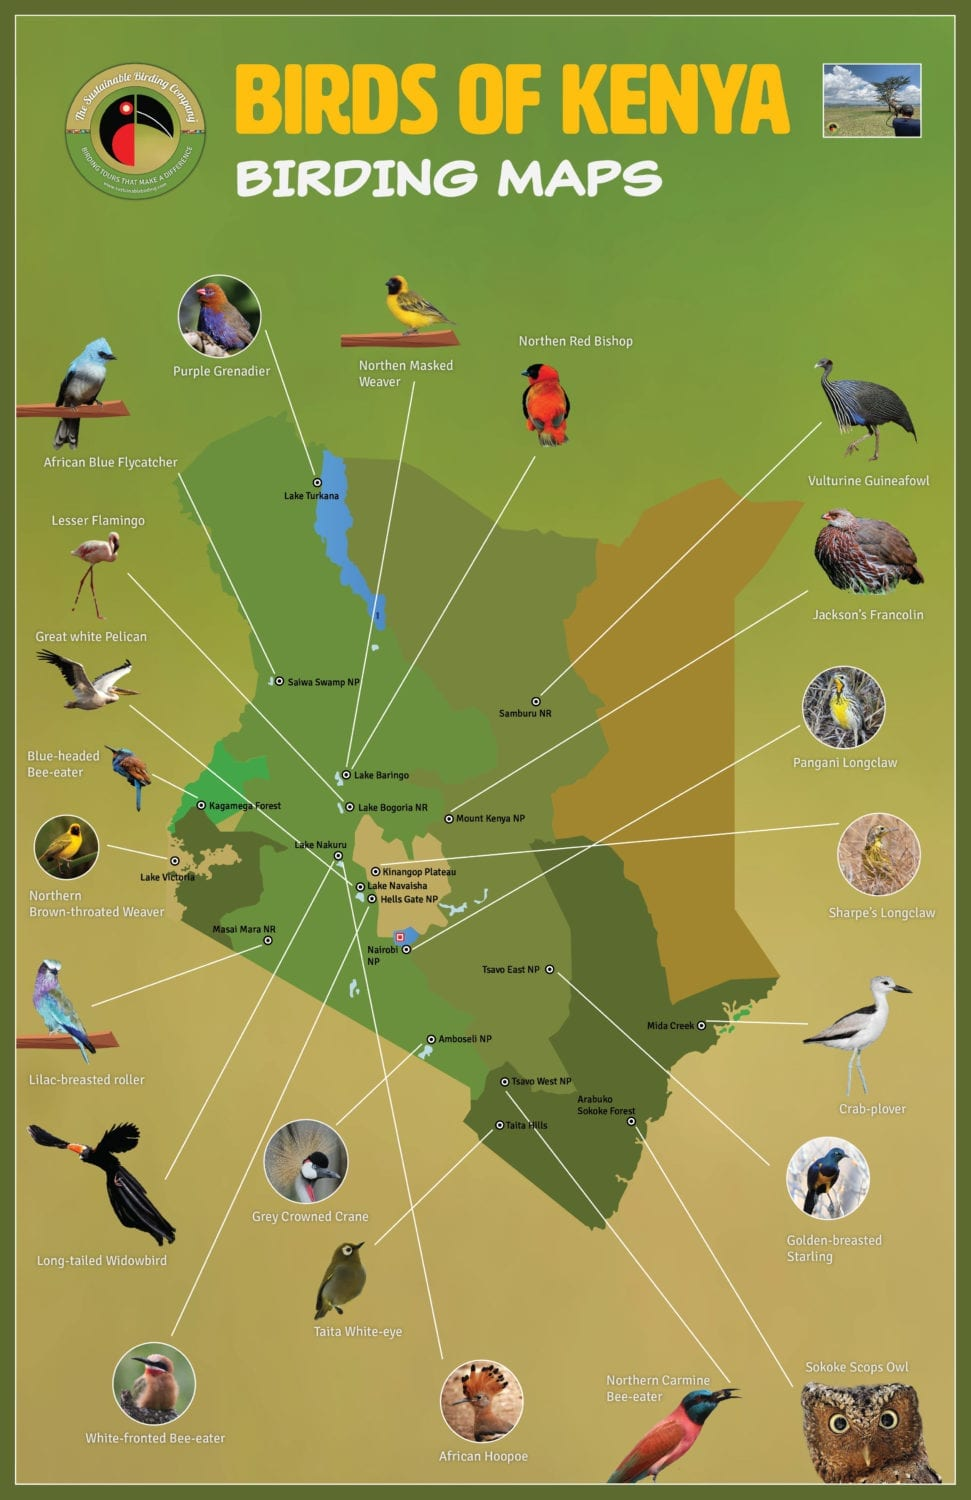 Birdwatching Map of Kenya